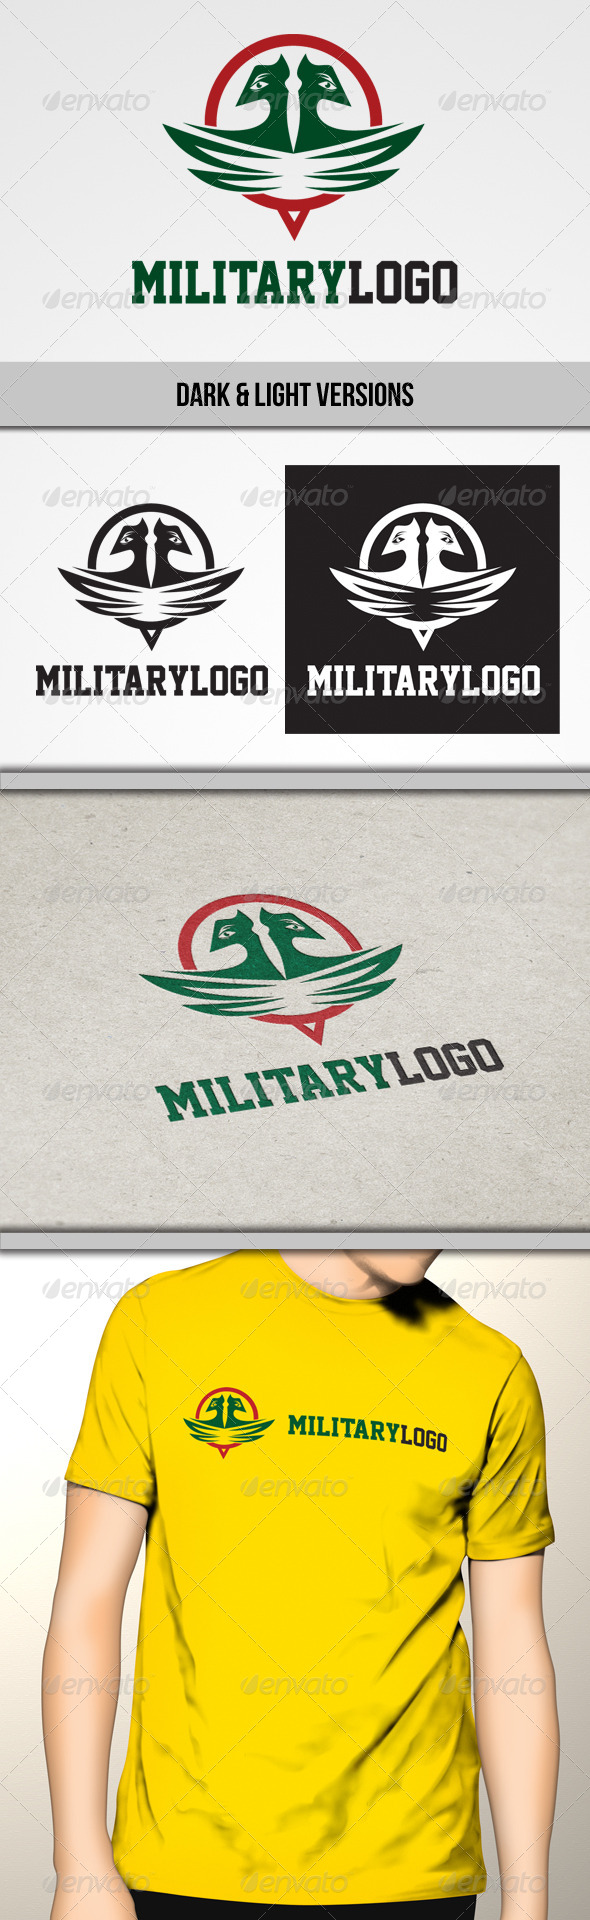 GraphicRiver Military Logo 5136599